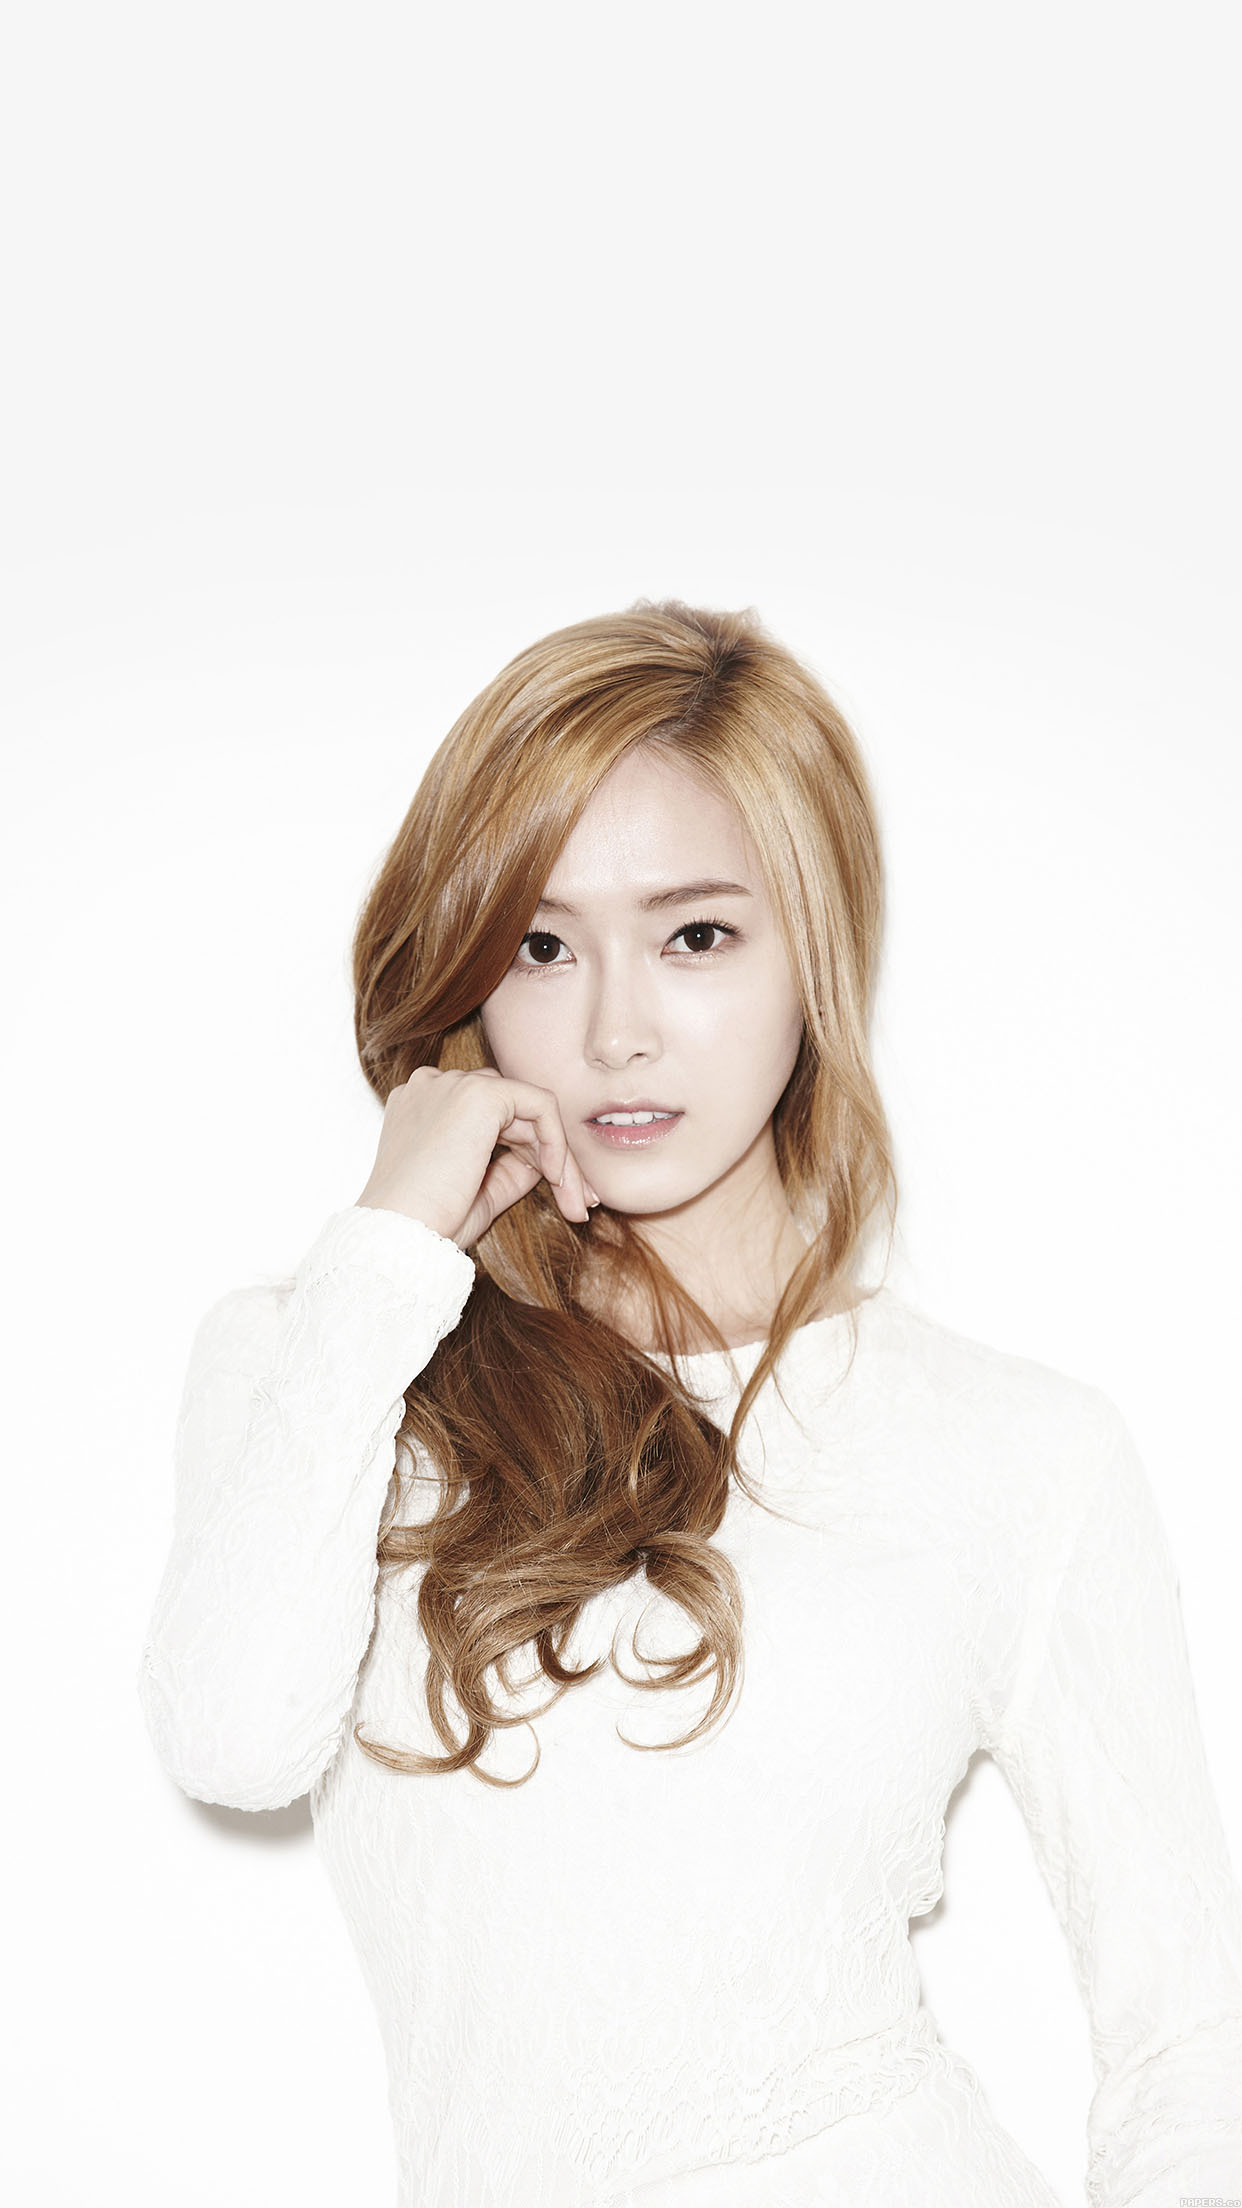 Iphone6papers Ha73 Wallpaper Jessica Snsd Kpop